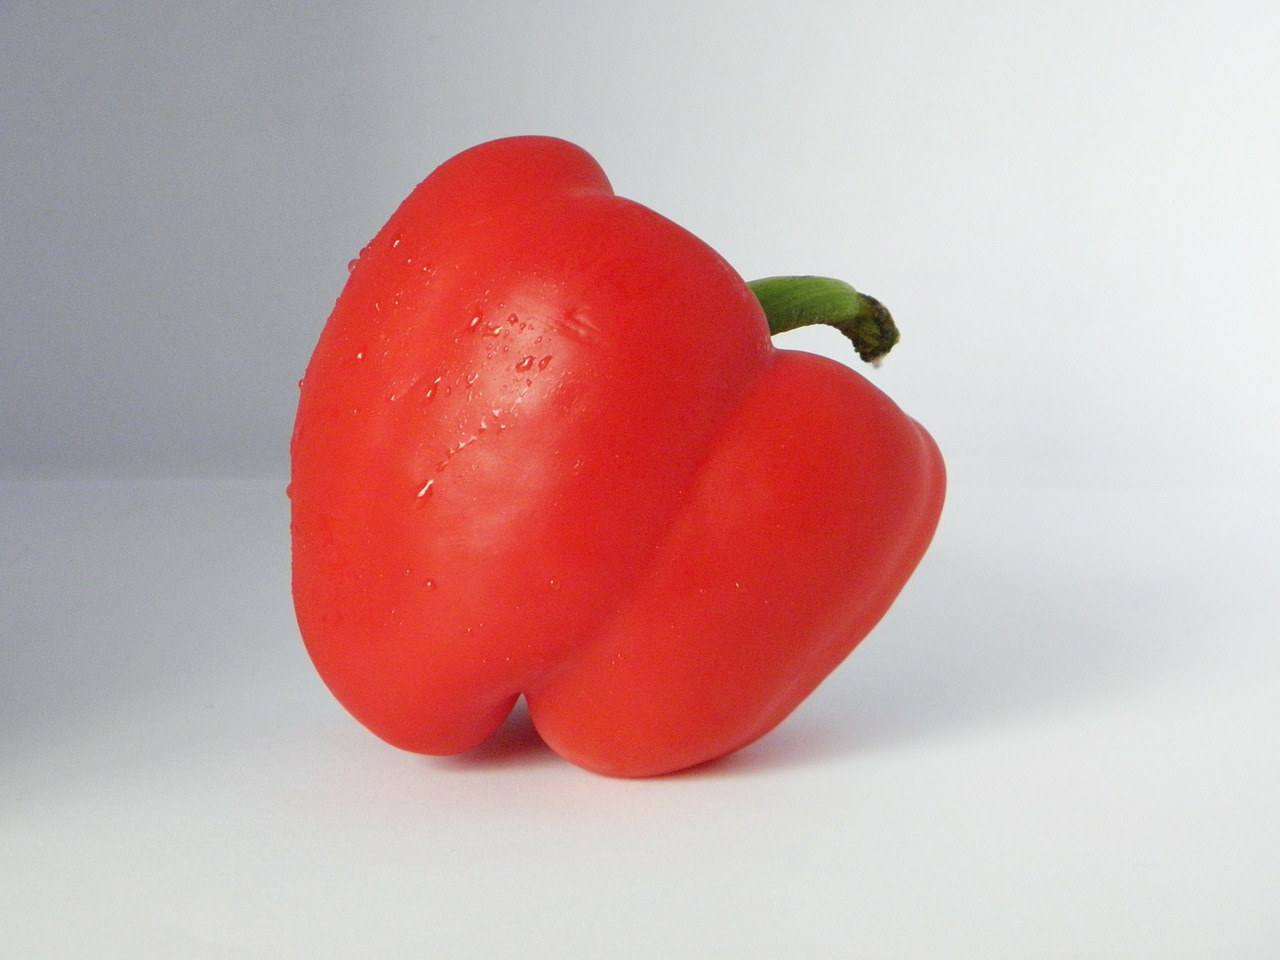 paprika red vegetables free photo